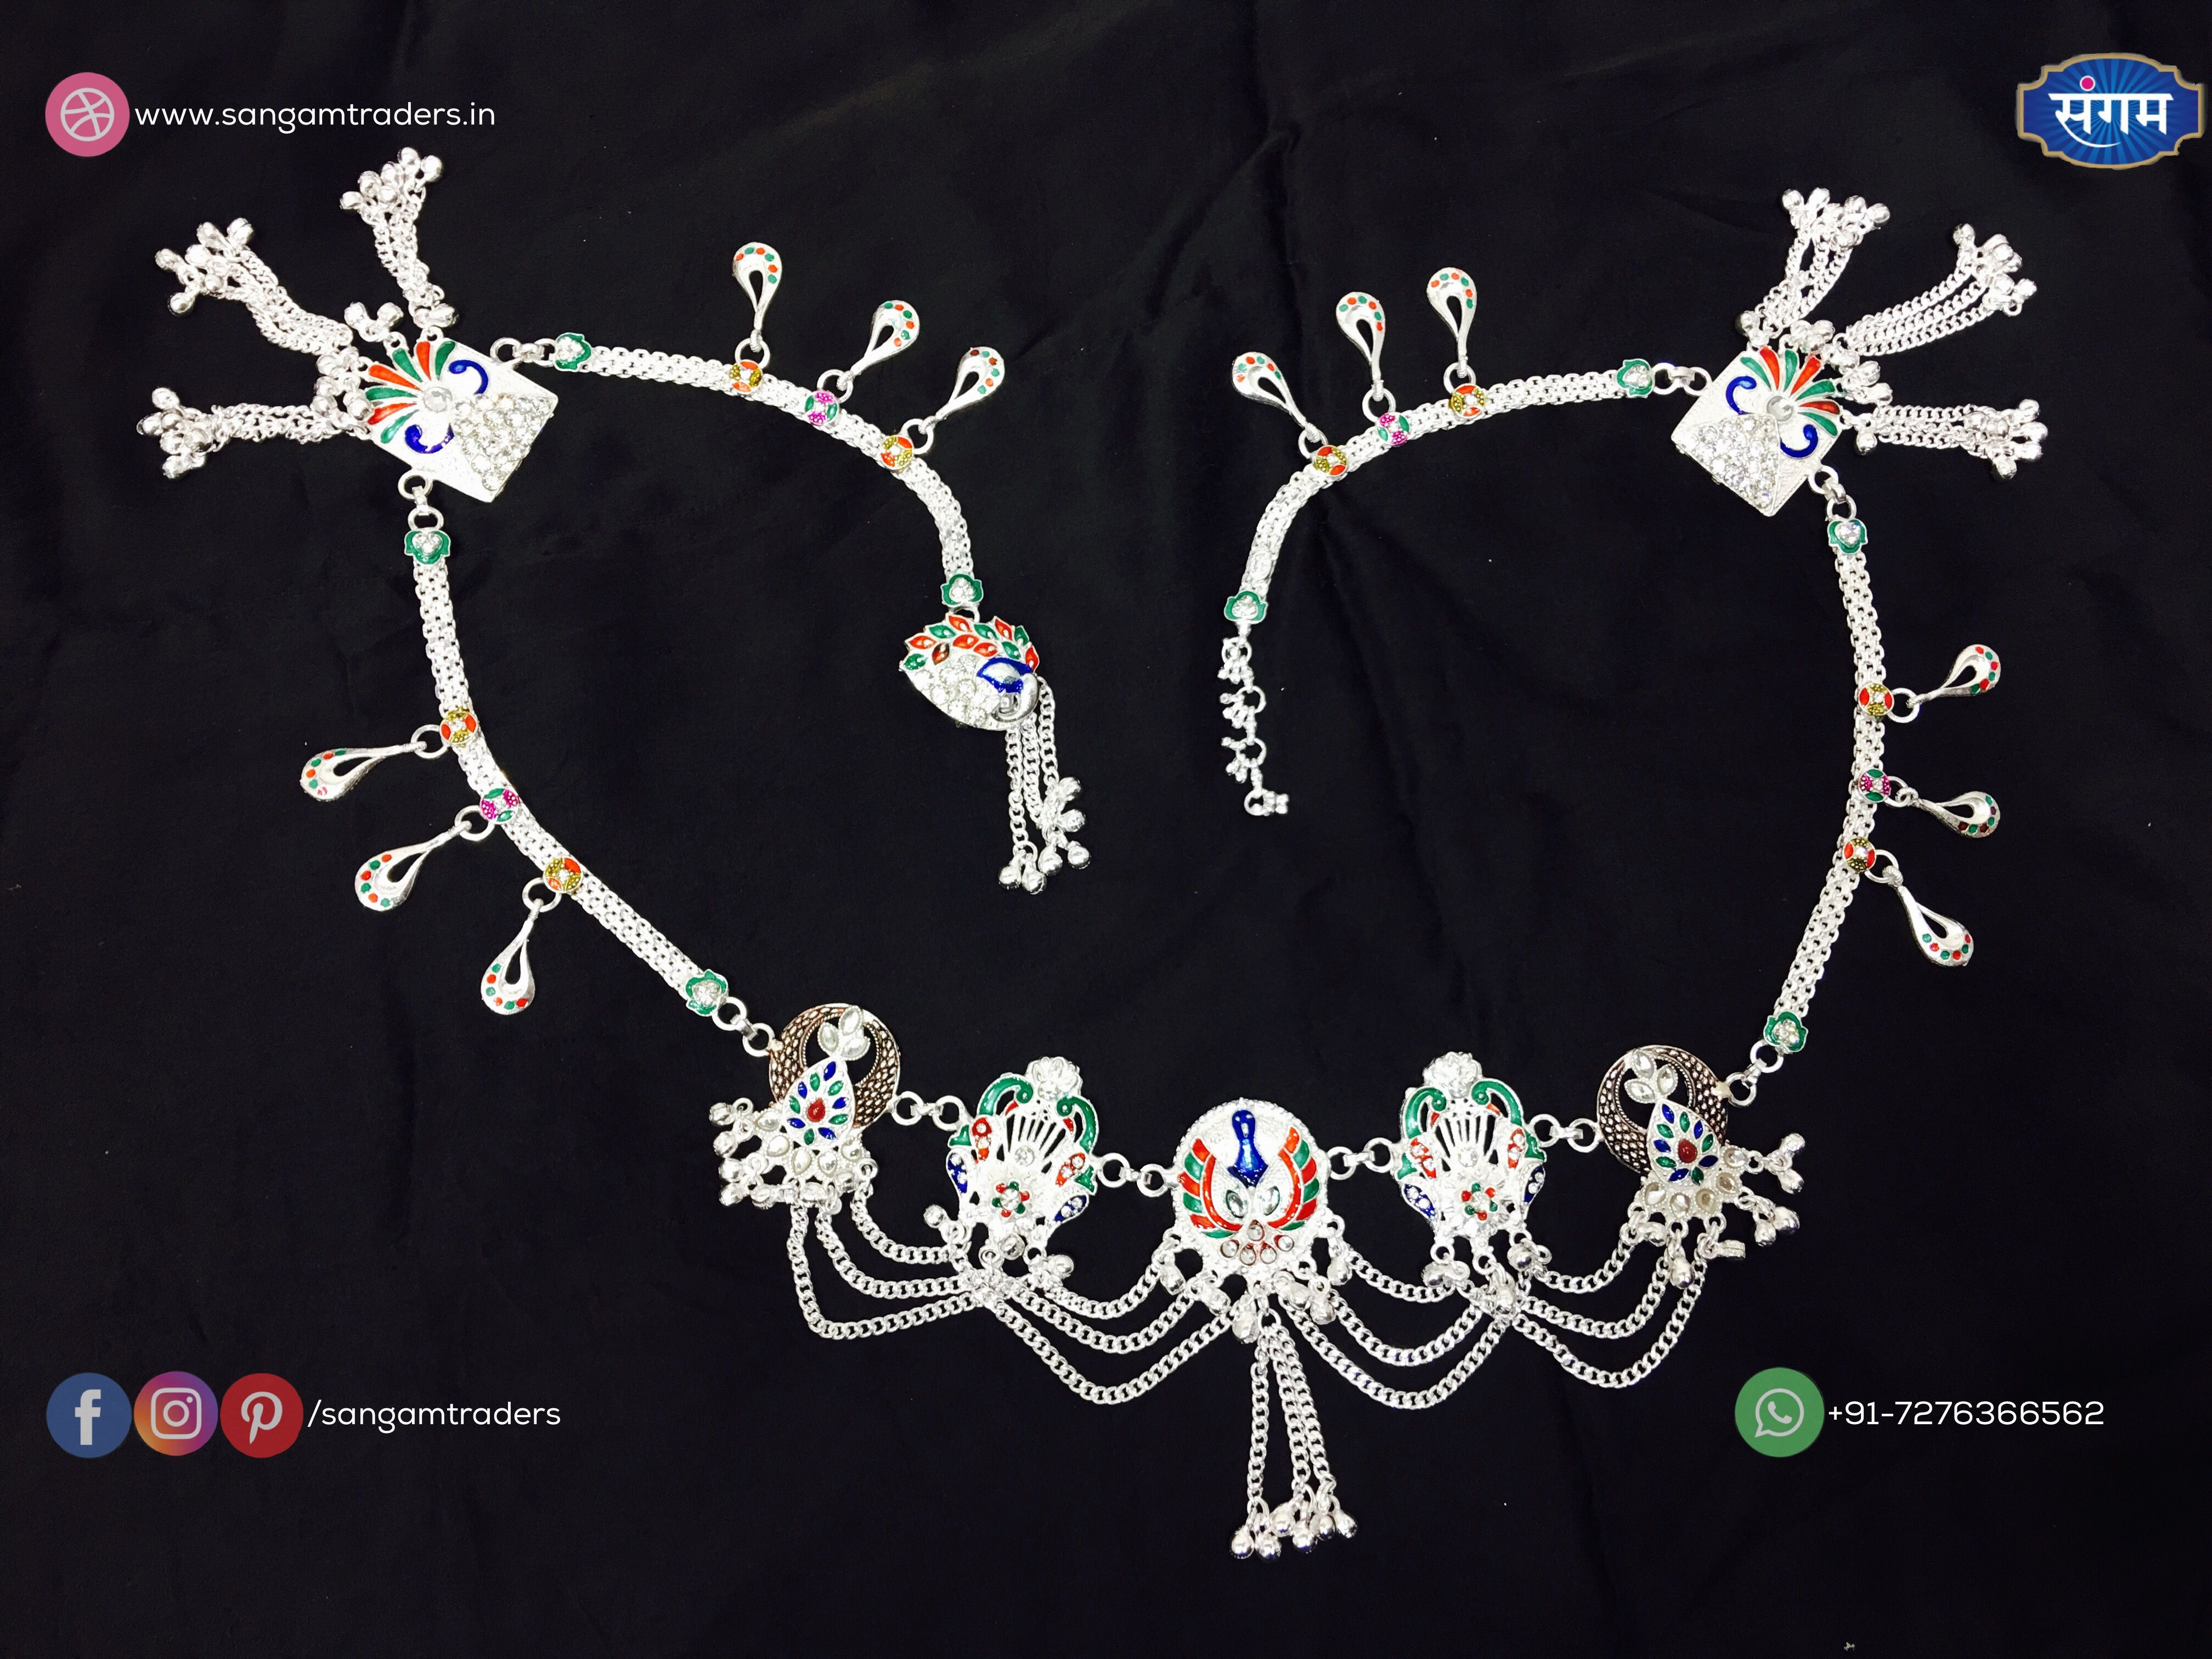 Details about  /Nose Pin Oxidized 925 Sterling Silver Indian Woman Fashion Handmade Jewelry